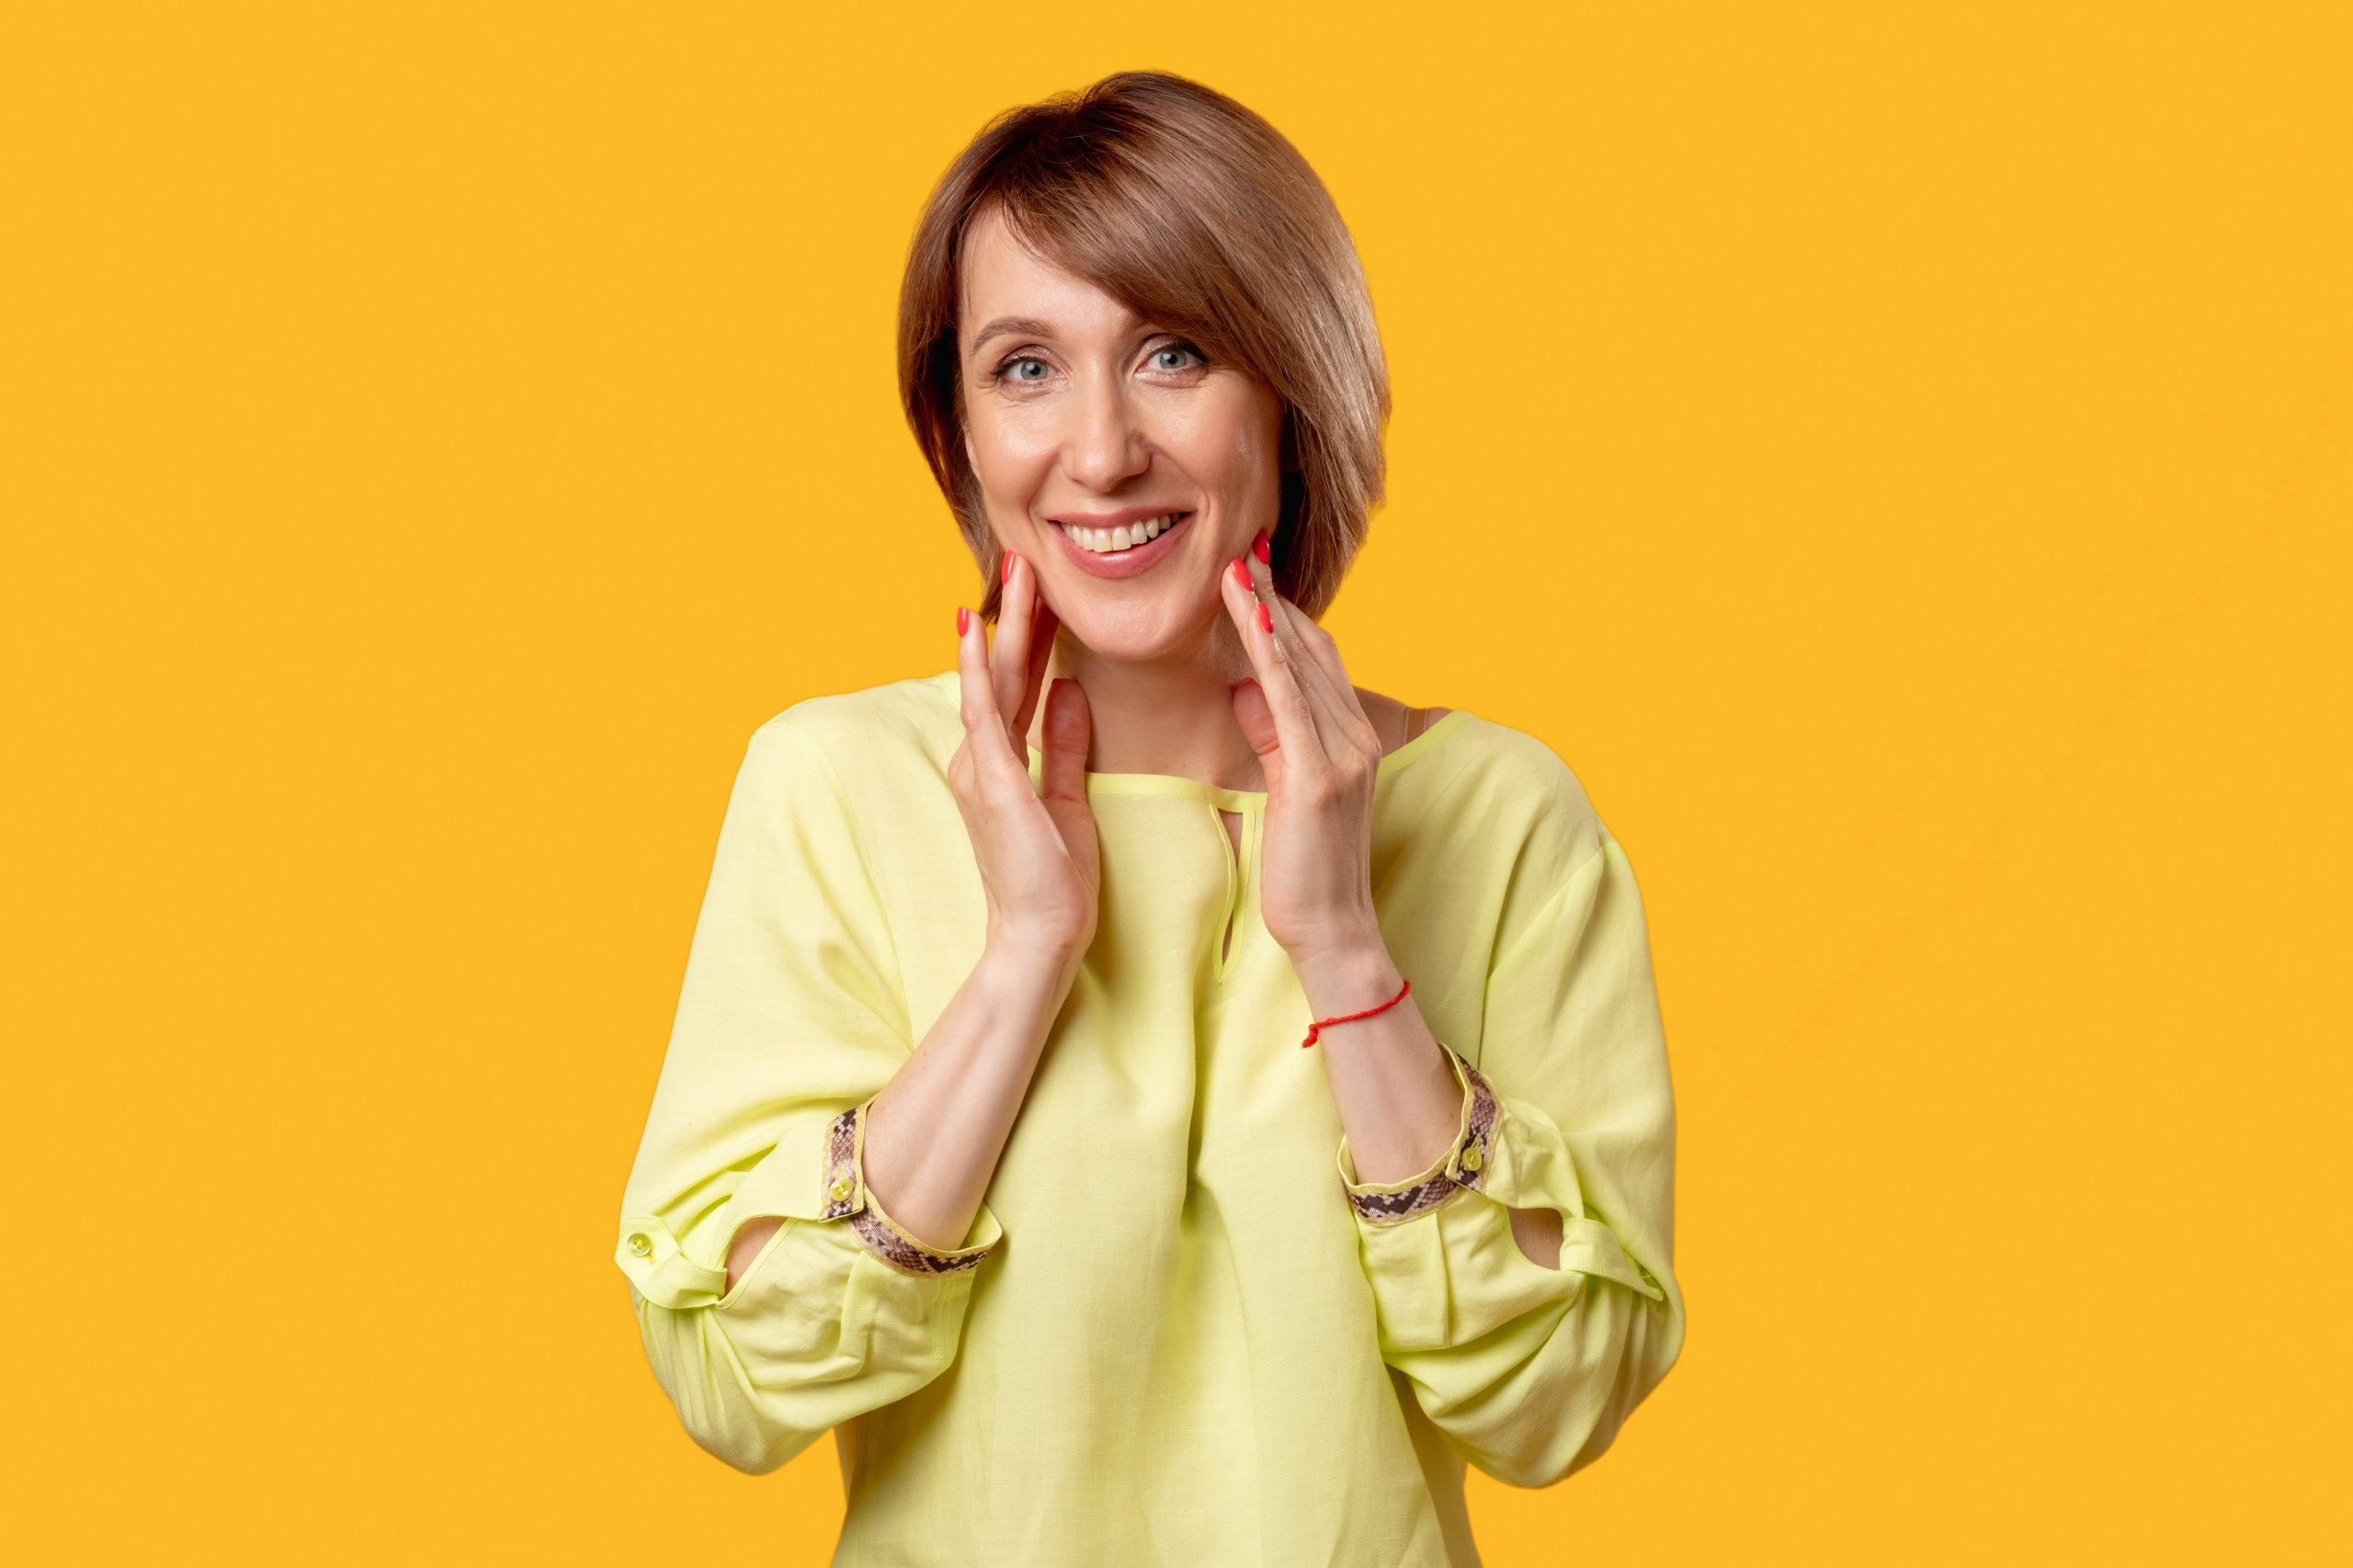 Satisfied mature woman. Face skin care. Anti-aging procedure. Aesthetic cosmetology. Portrait of positive happy lady in yellow blouse smiling isolated on orange copy space background.